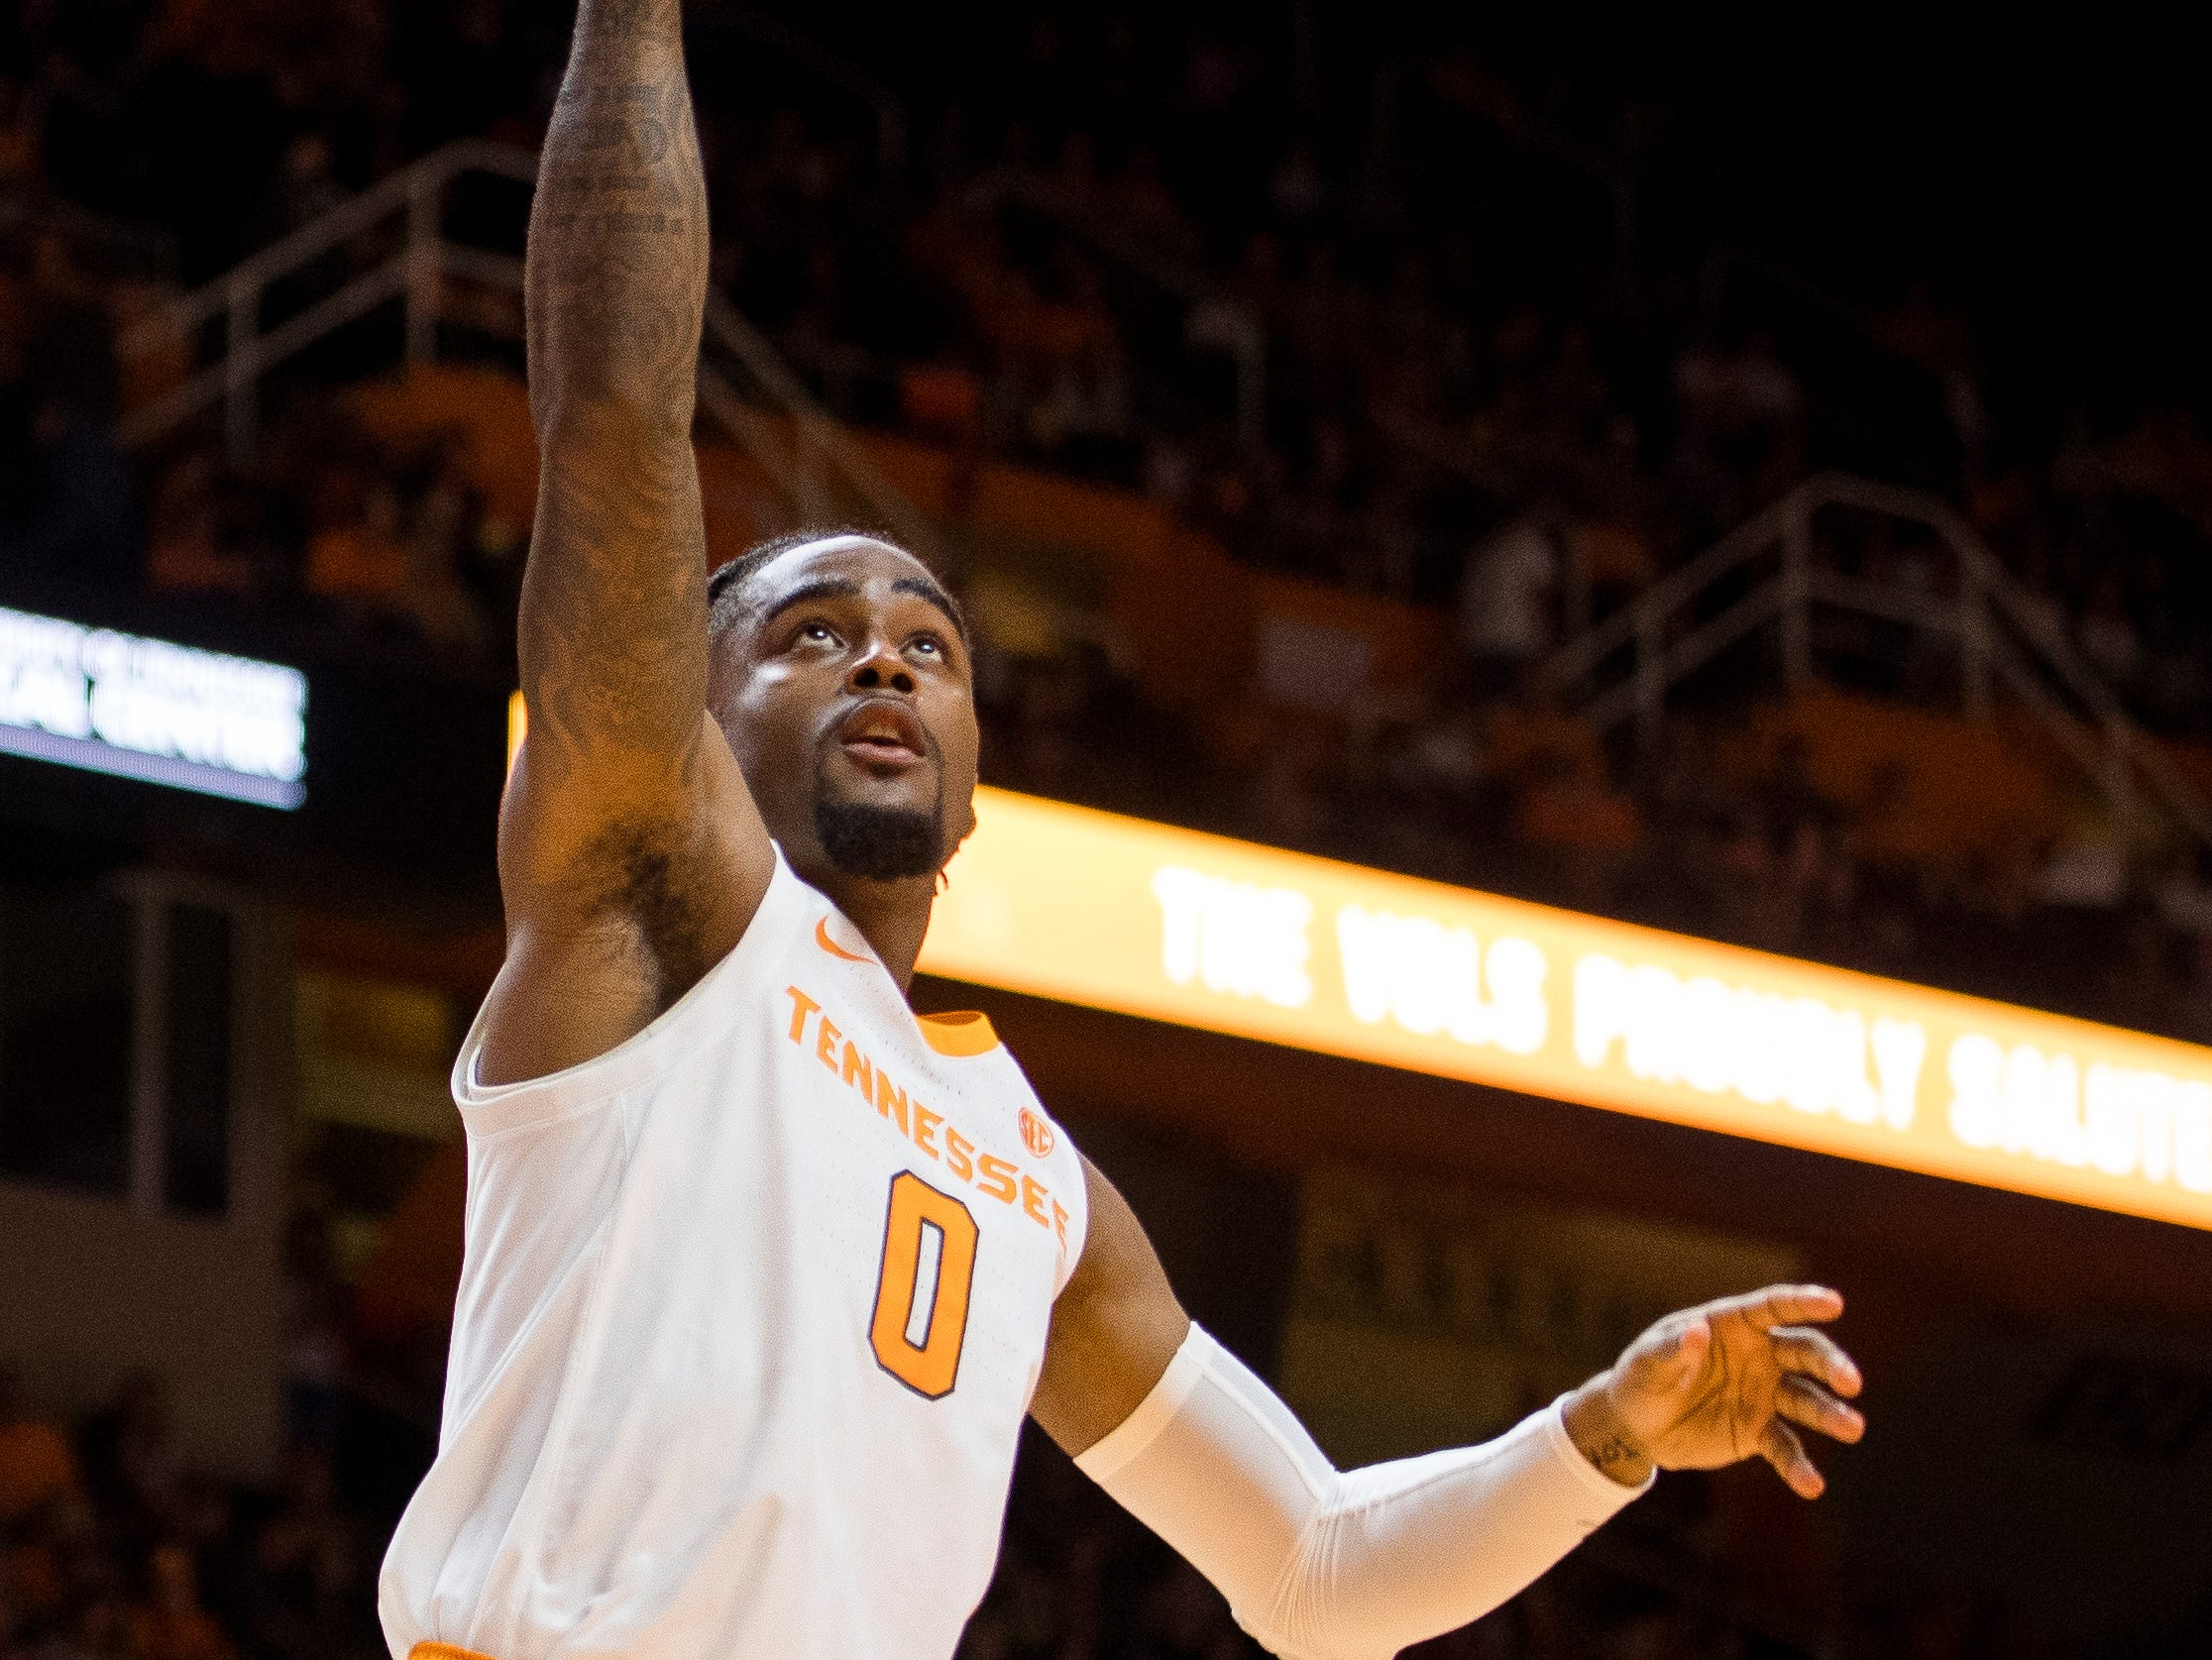 Tennessee guard Jordan Bone (0) attempts a shot during Tennessee's basketball game against Lenoir-Rhyne at Thompson-Boling Arena in Knoxville on Tuesday, November 6, 2018.